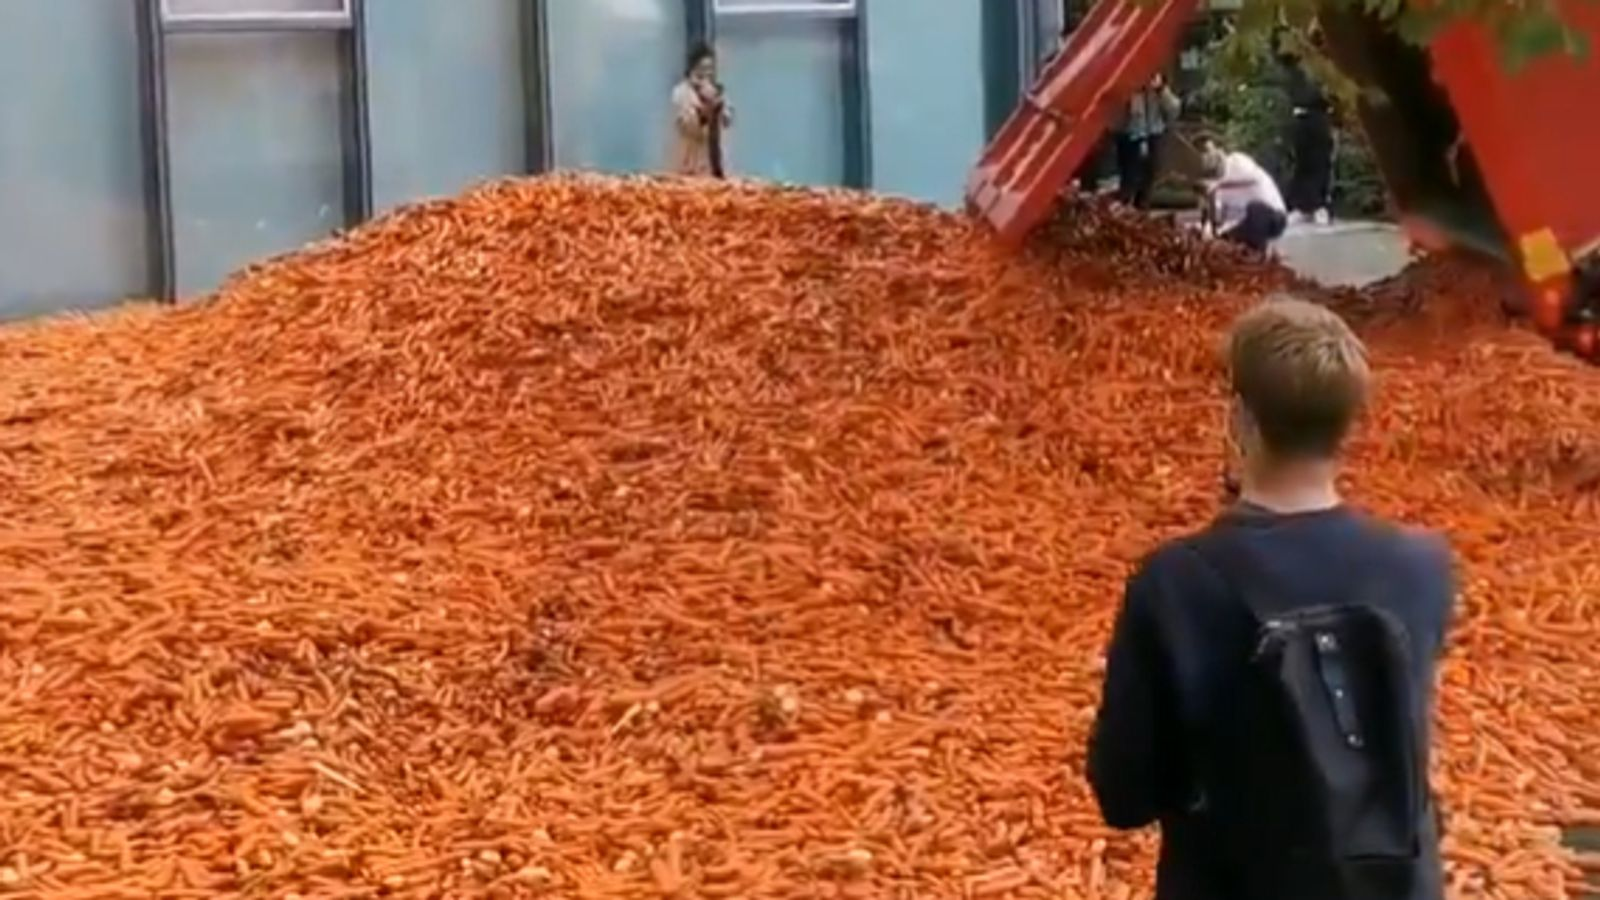 Truck load of carrots dumped outside London university | UK News